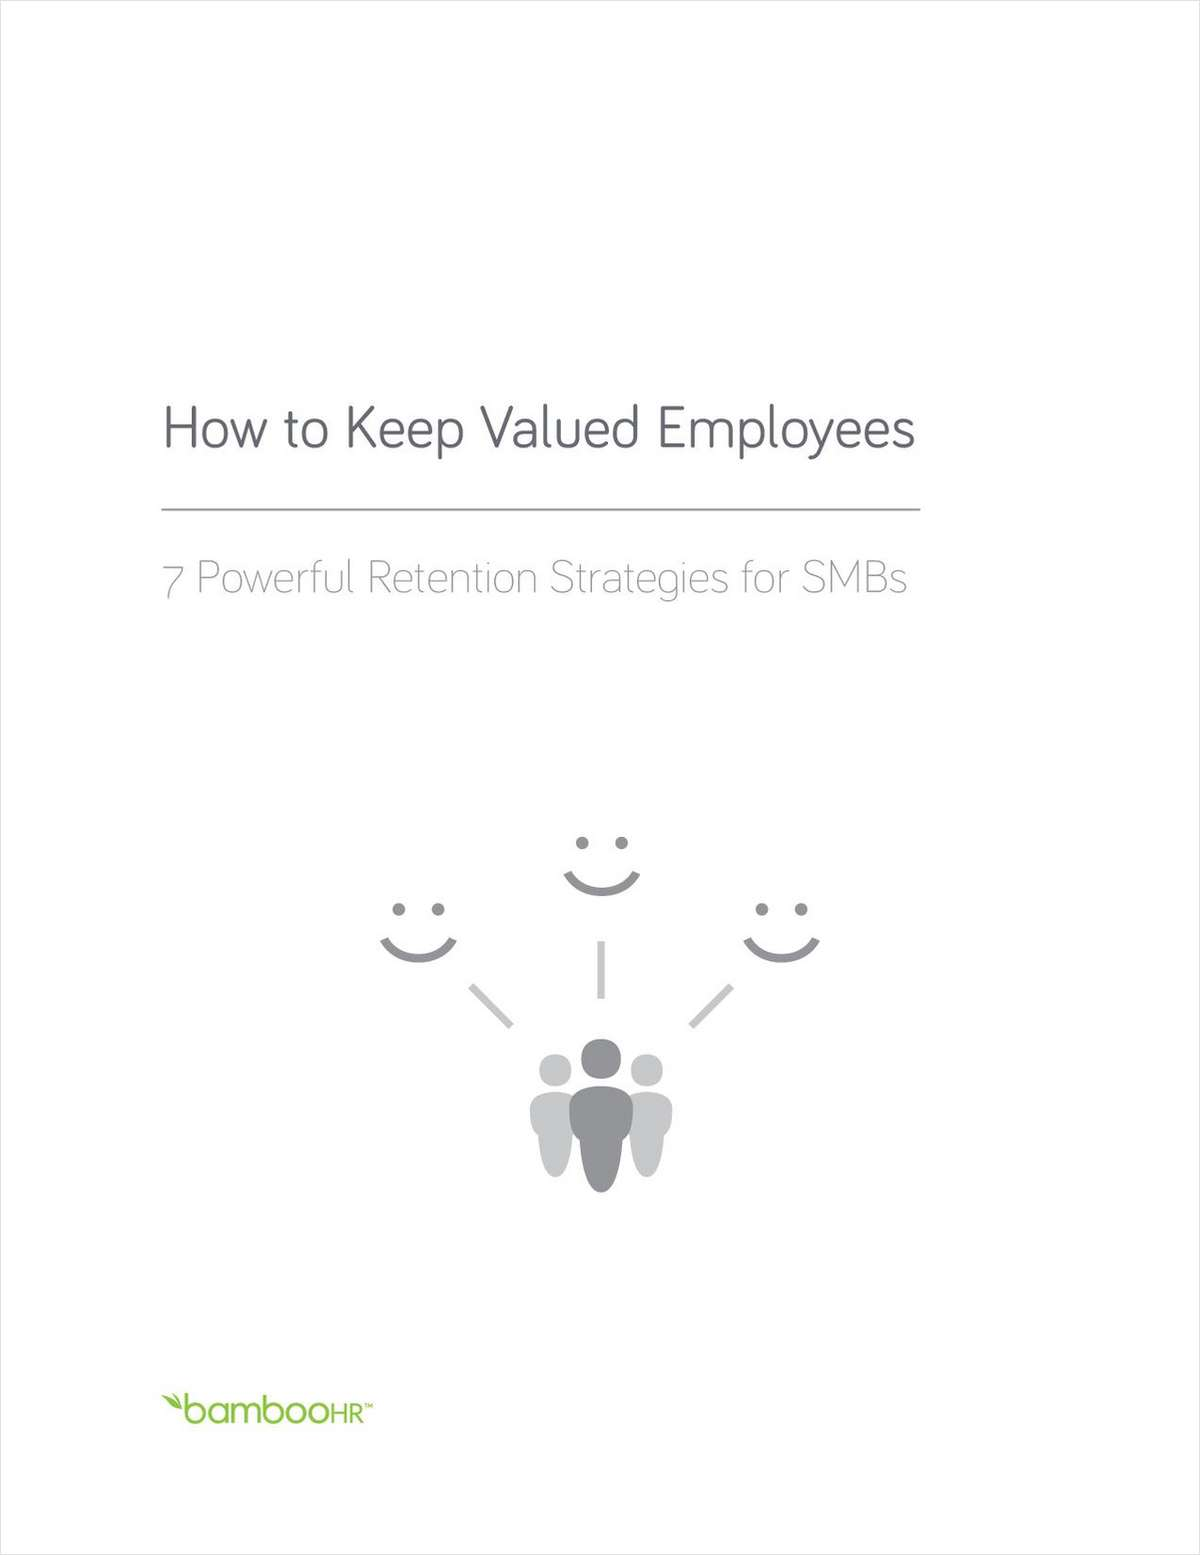 How to Keep Valued Employees: 7 Powerful Retention Strategies for SMBs